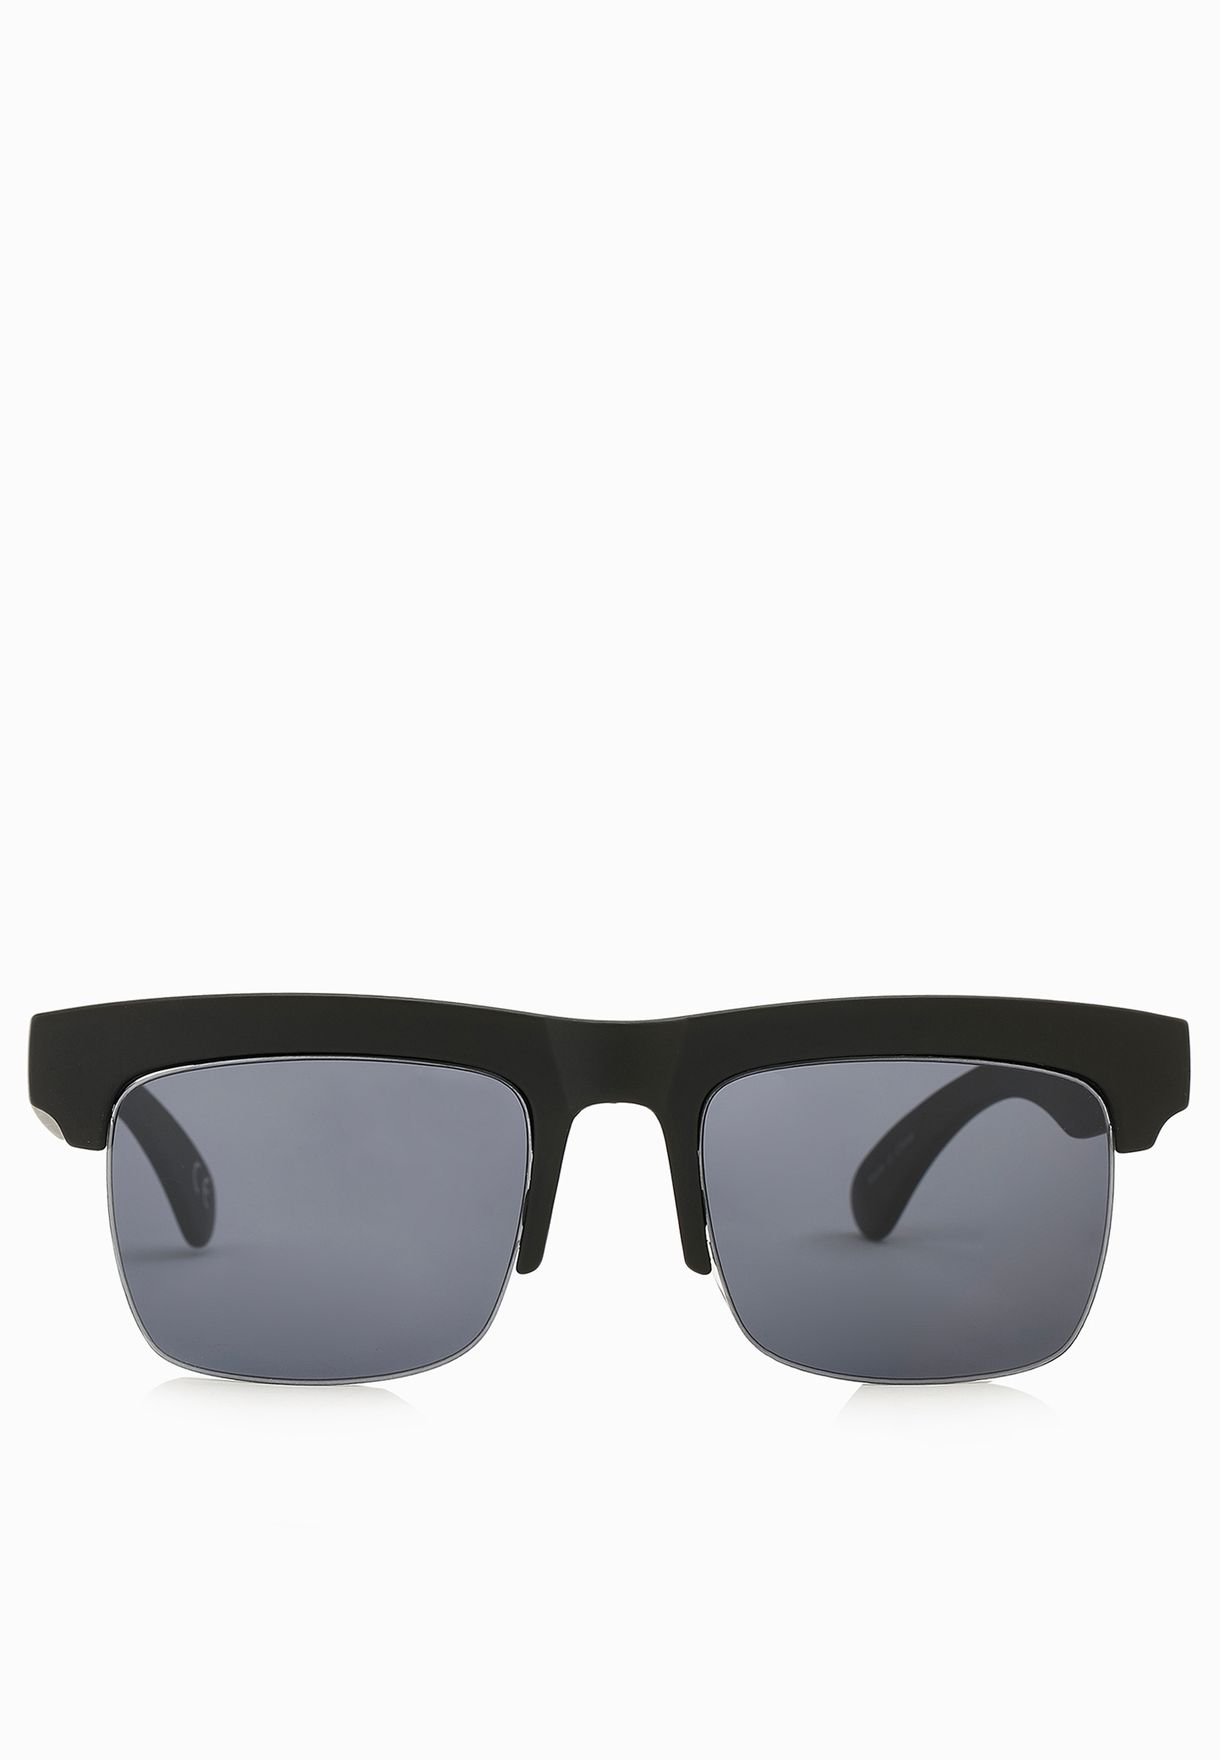 80692c7de9 Shop Jeepers Peepers black Square Cut Clubmaster Sunglasses for Men in  Qatar - JE122AC11UVO